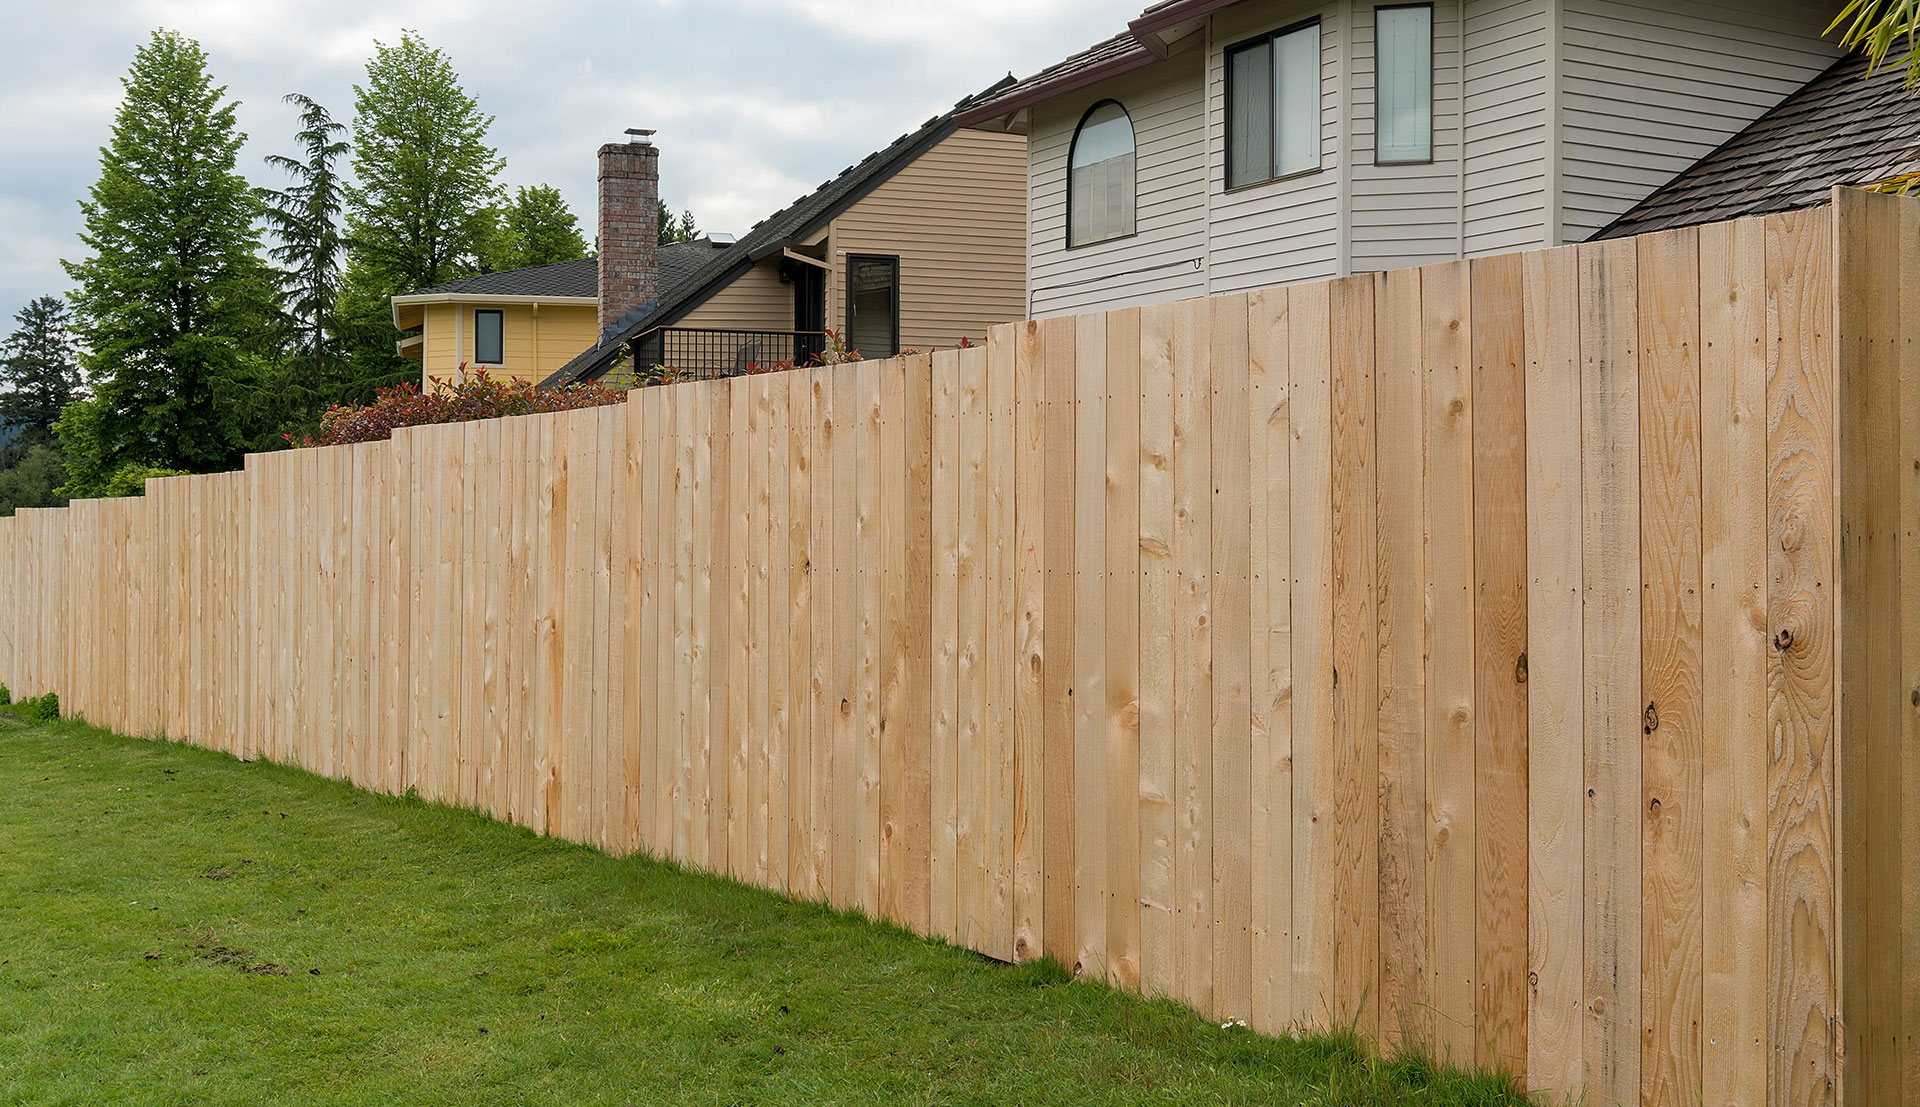 Get a Free Estimate On Fence Instillation & Repair From a Fence Contractor